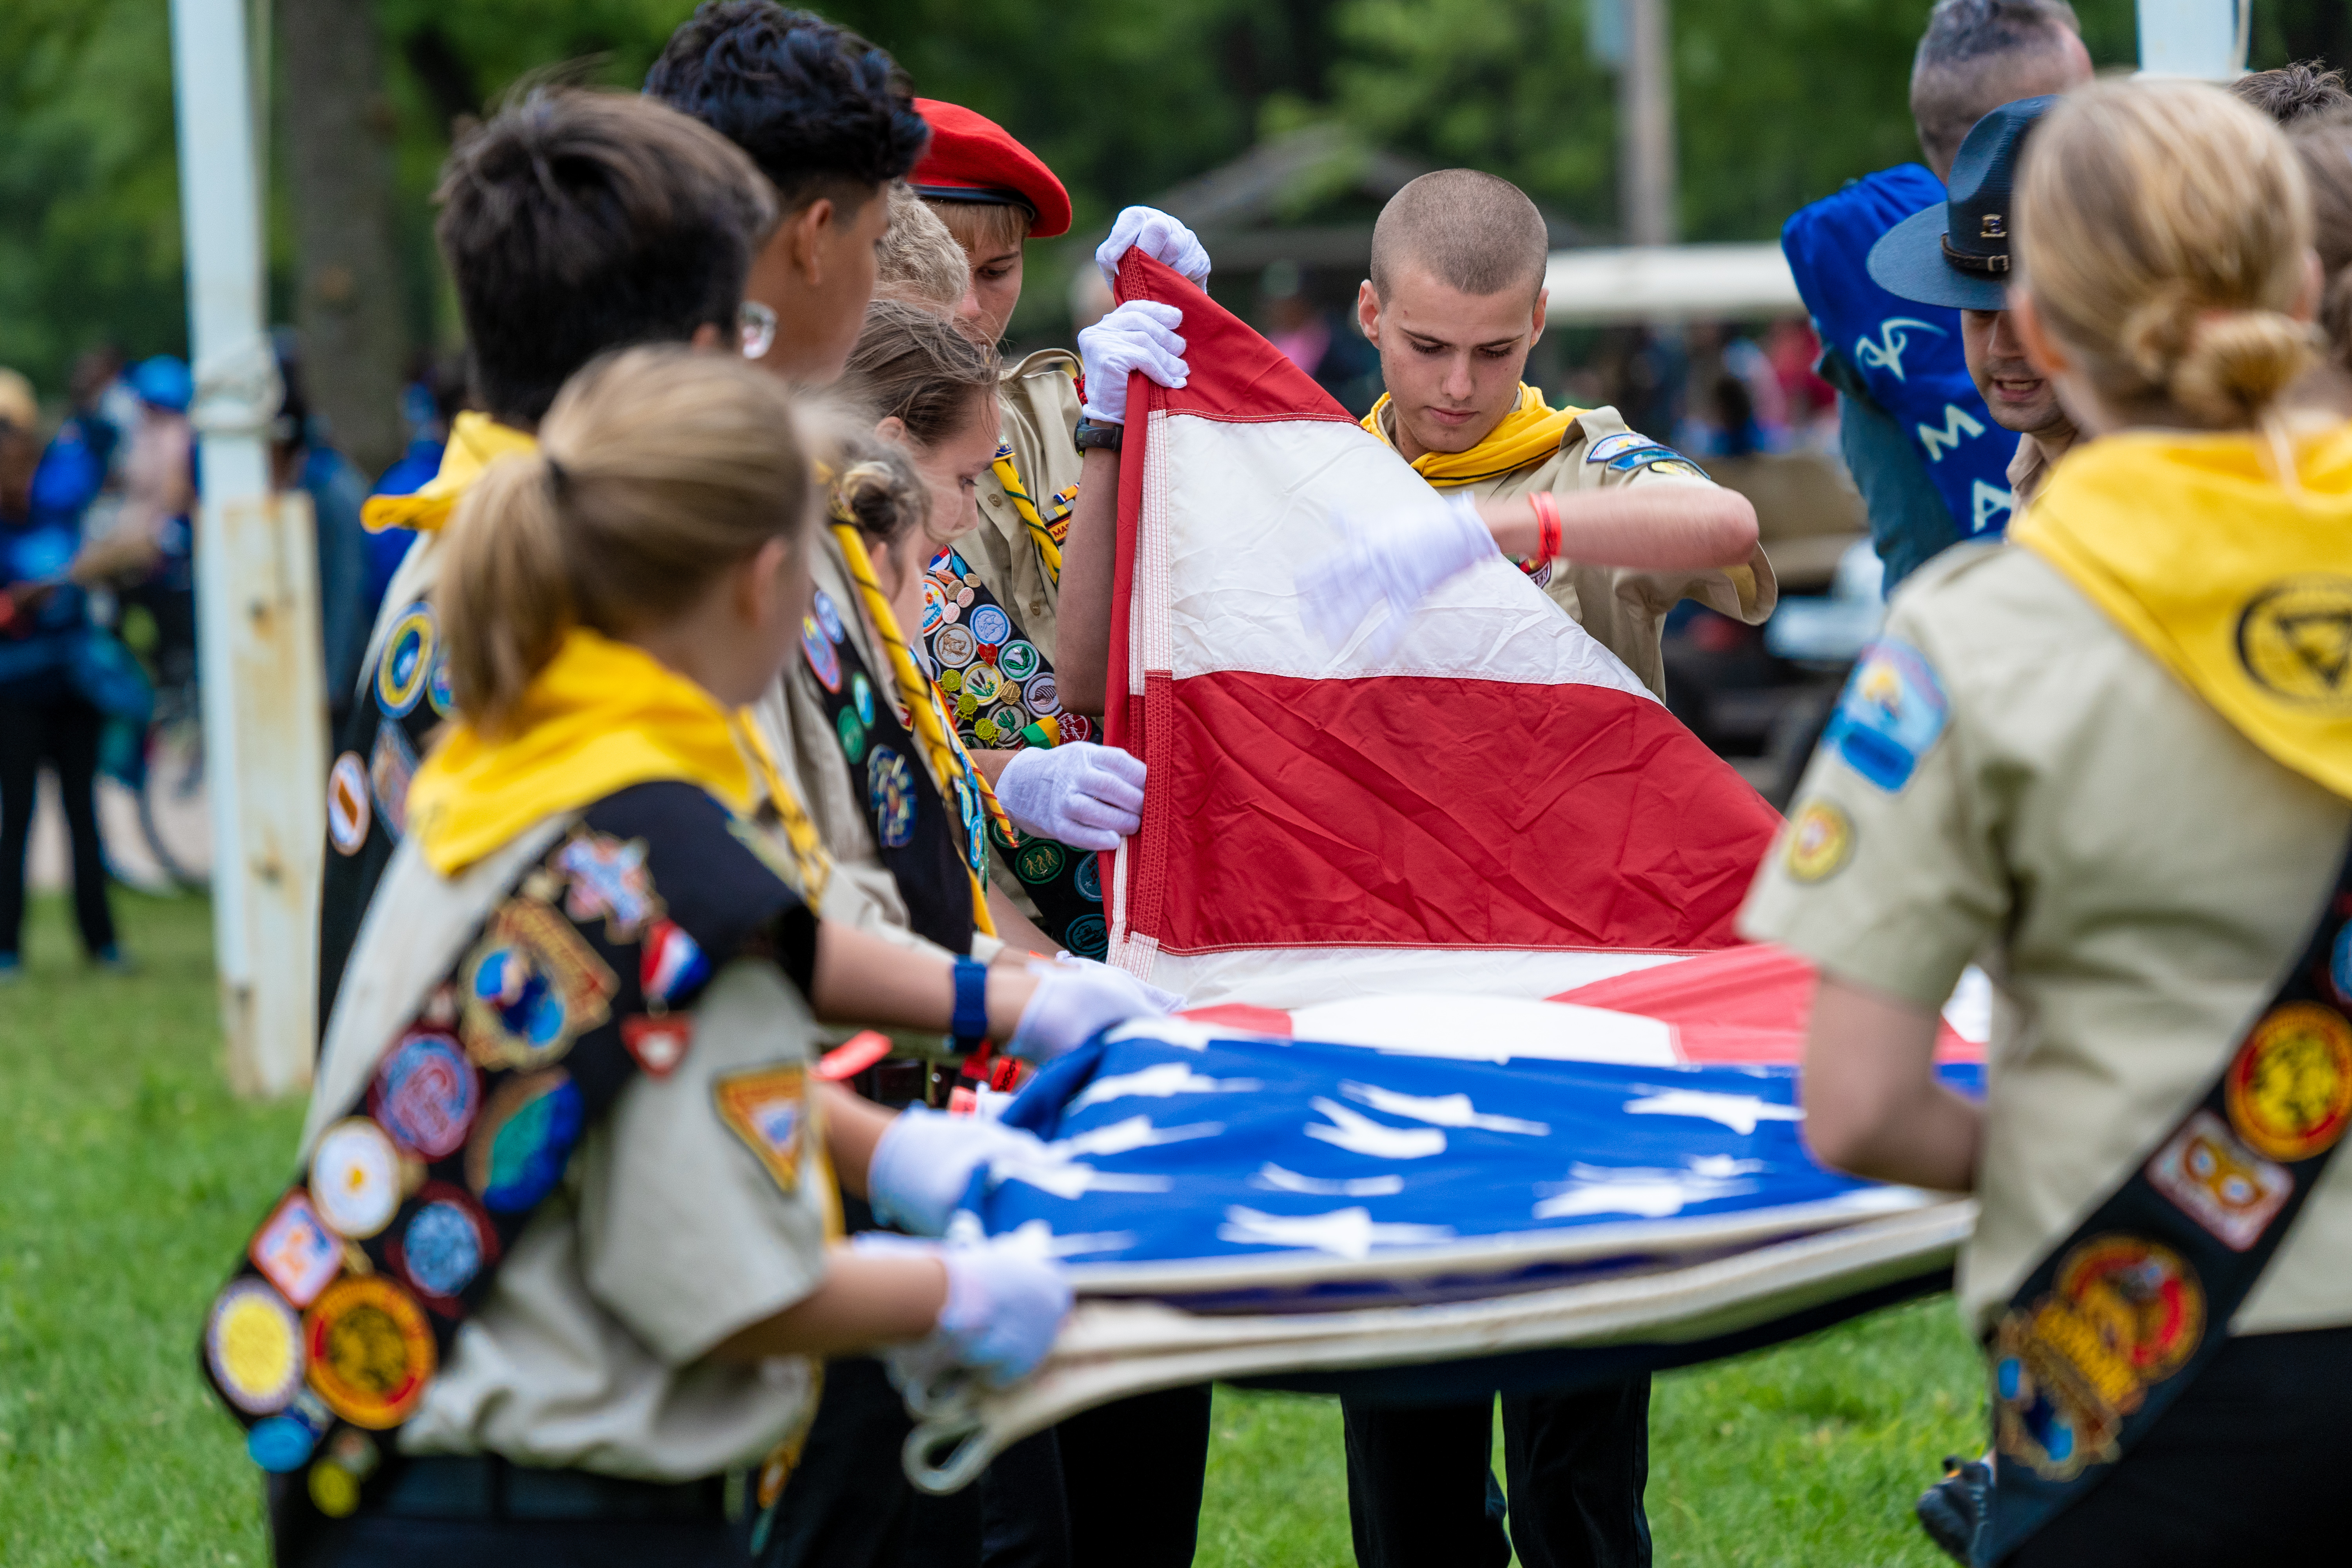 oshkosh 2019 Lowering of the US Flag on Day two of 2019 Oshkosh Camporee Terrence Bowen 48539430126_8f7f82af44_o.jpg